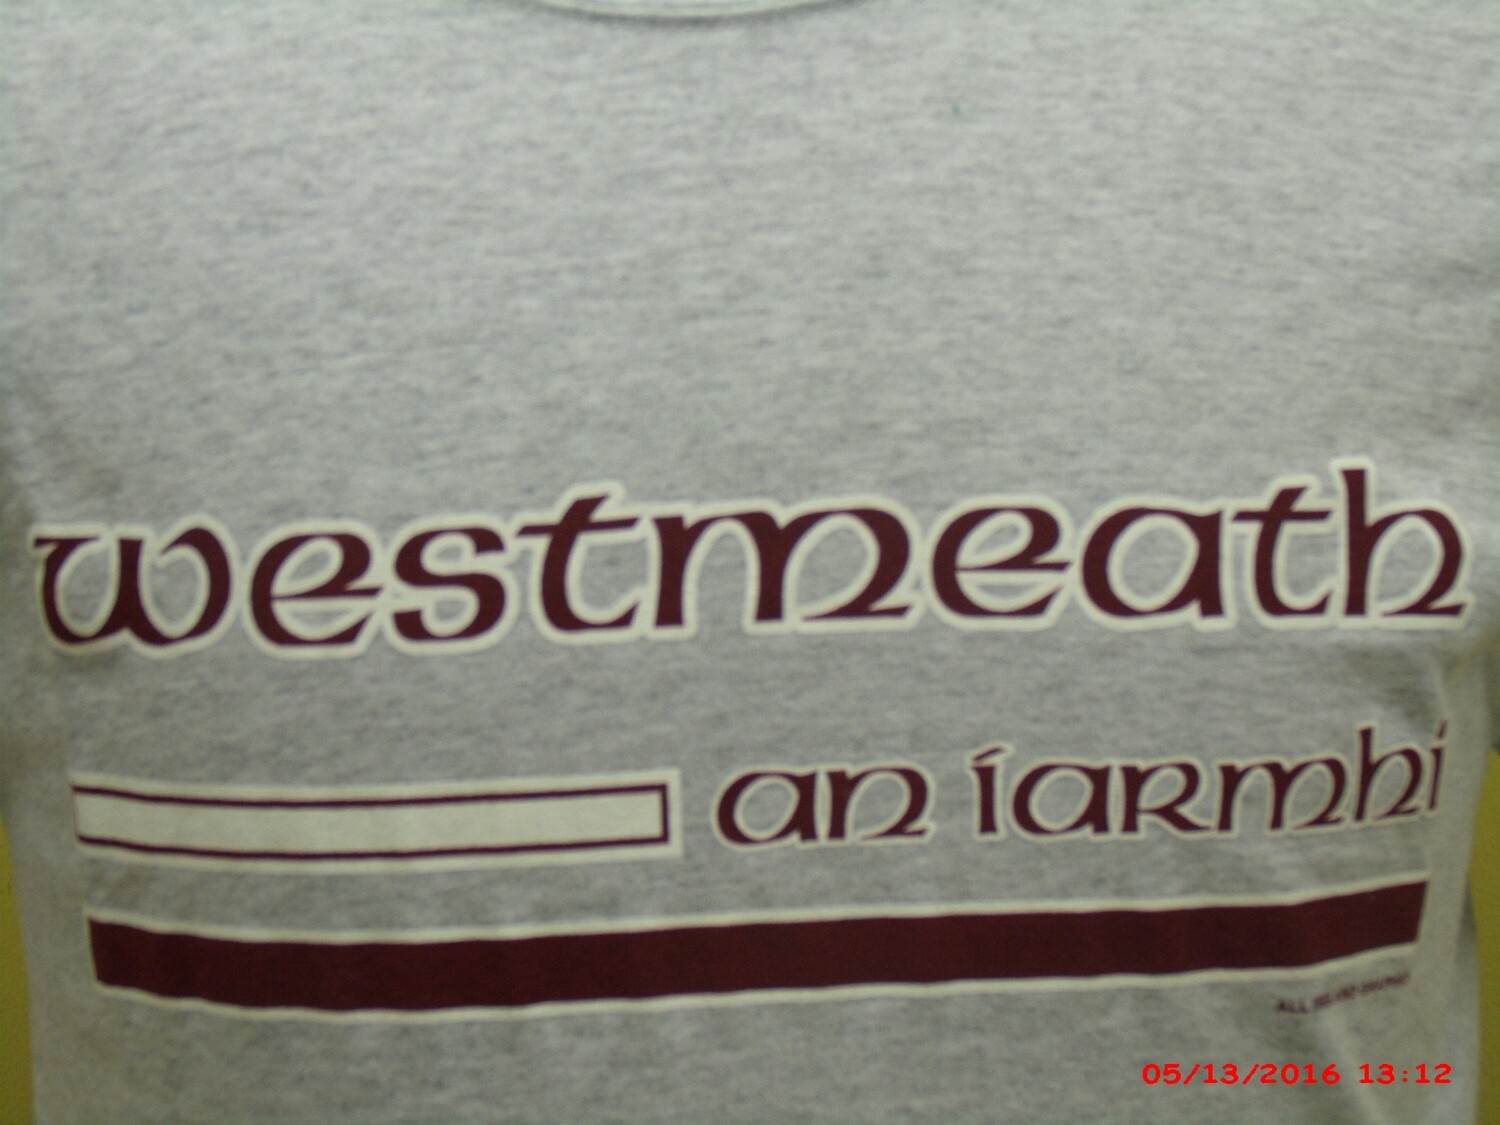 WESTMEATH COUNTY SWEAT